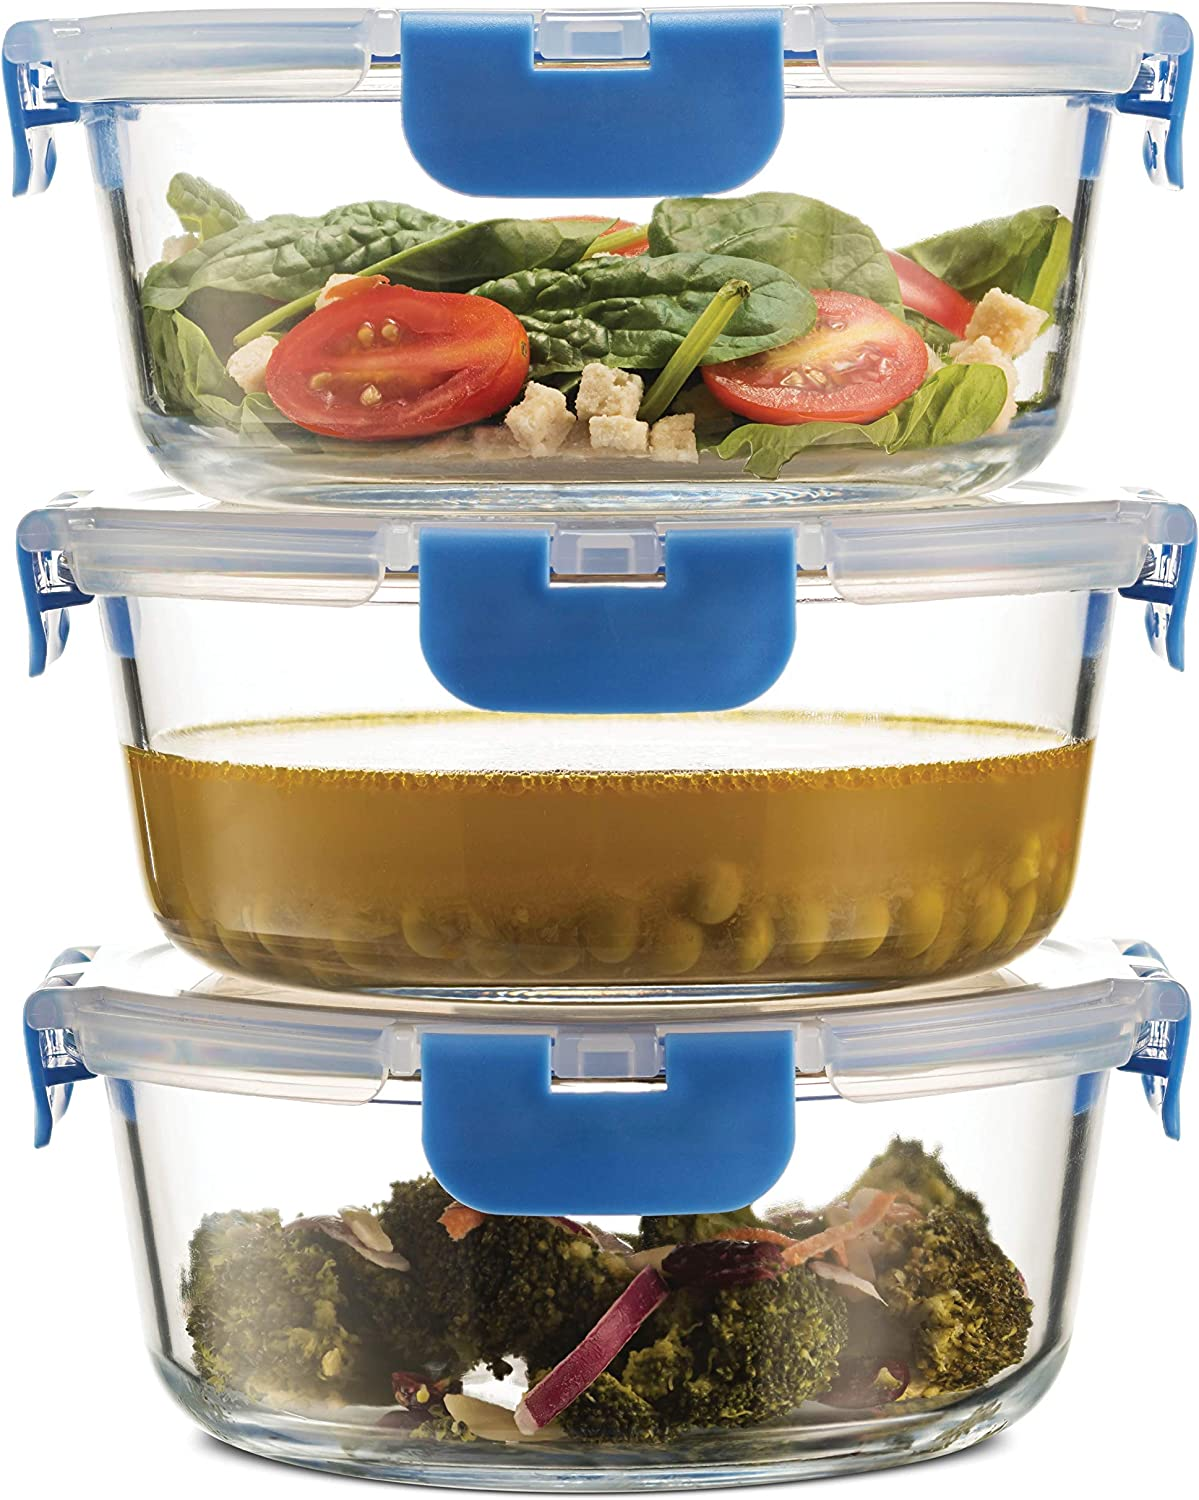 Superior Glass Round Meal Prep Containers -3pk(32oz) Newly Innovated Hinged BPA-free Locking lids- 100% Leak Proof Glass Food Storage Containers, Great on-the-go, Freezer to Oven Safe Lunch Containers